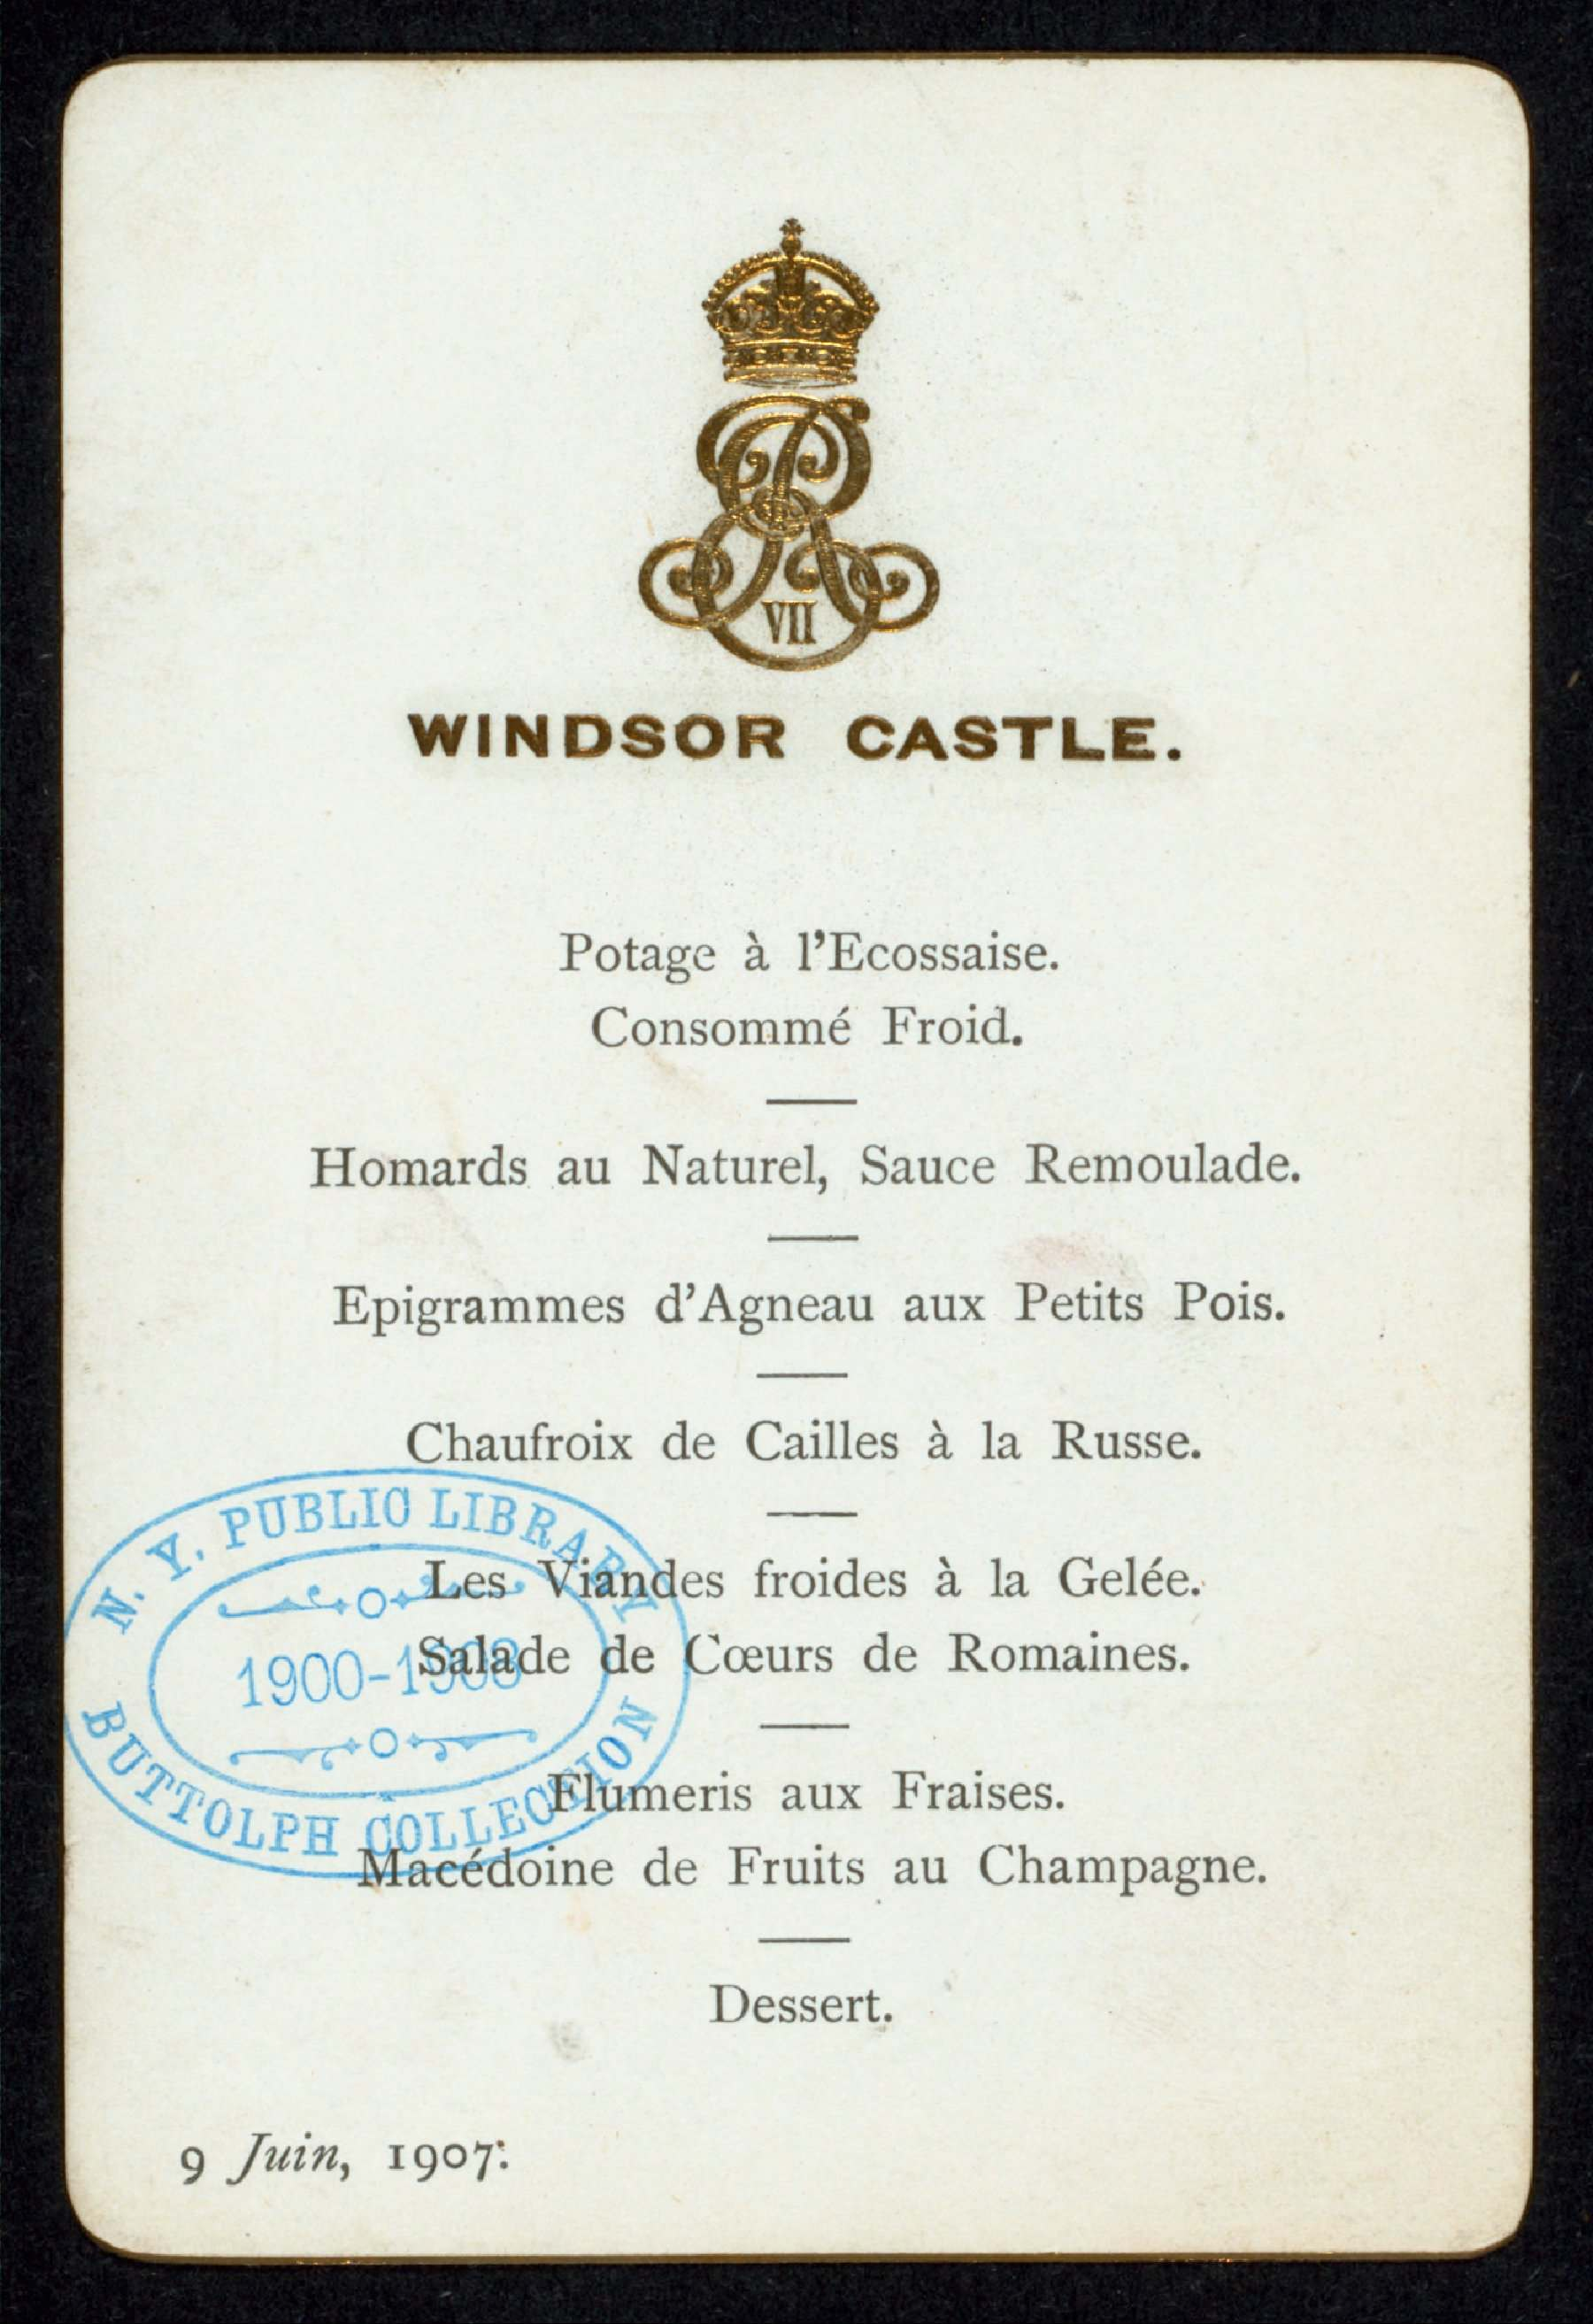 Menu for dinner at Windsor Castle with King Edward